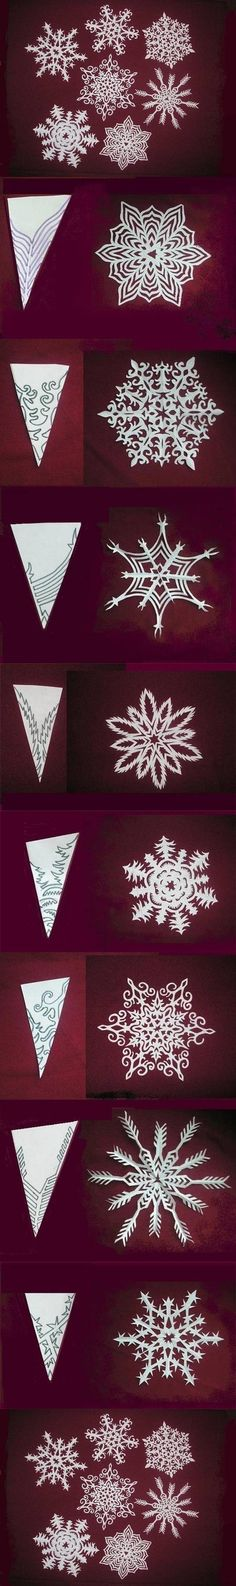 DIY Snowflakes Paper Pattern Tutorial diy craft crafts diy crafts how to tutorial winter crafts christmas crafts christmas decorations